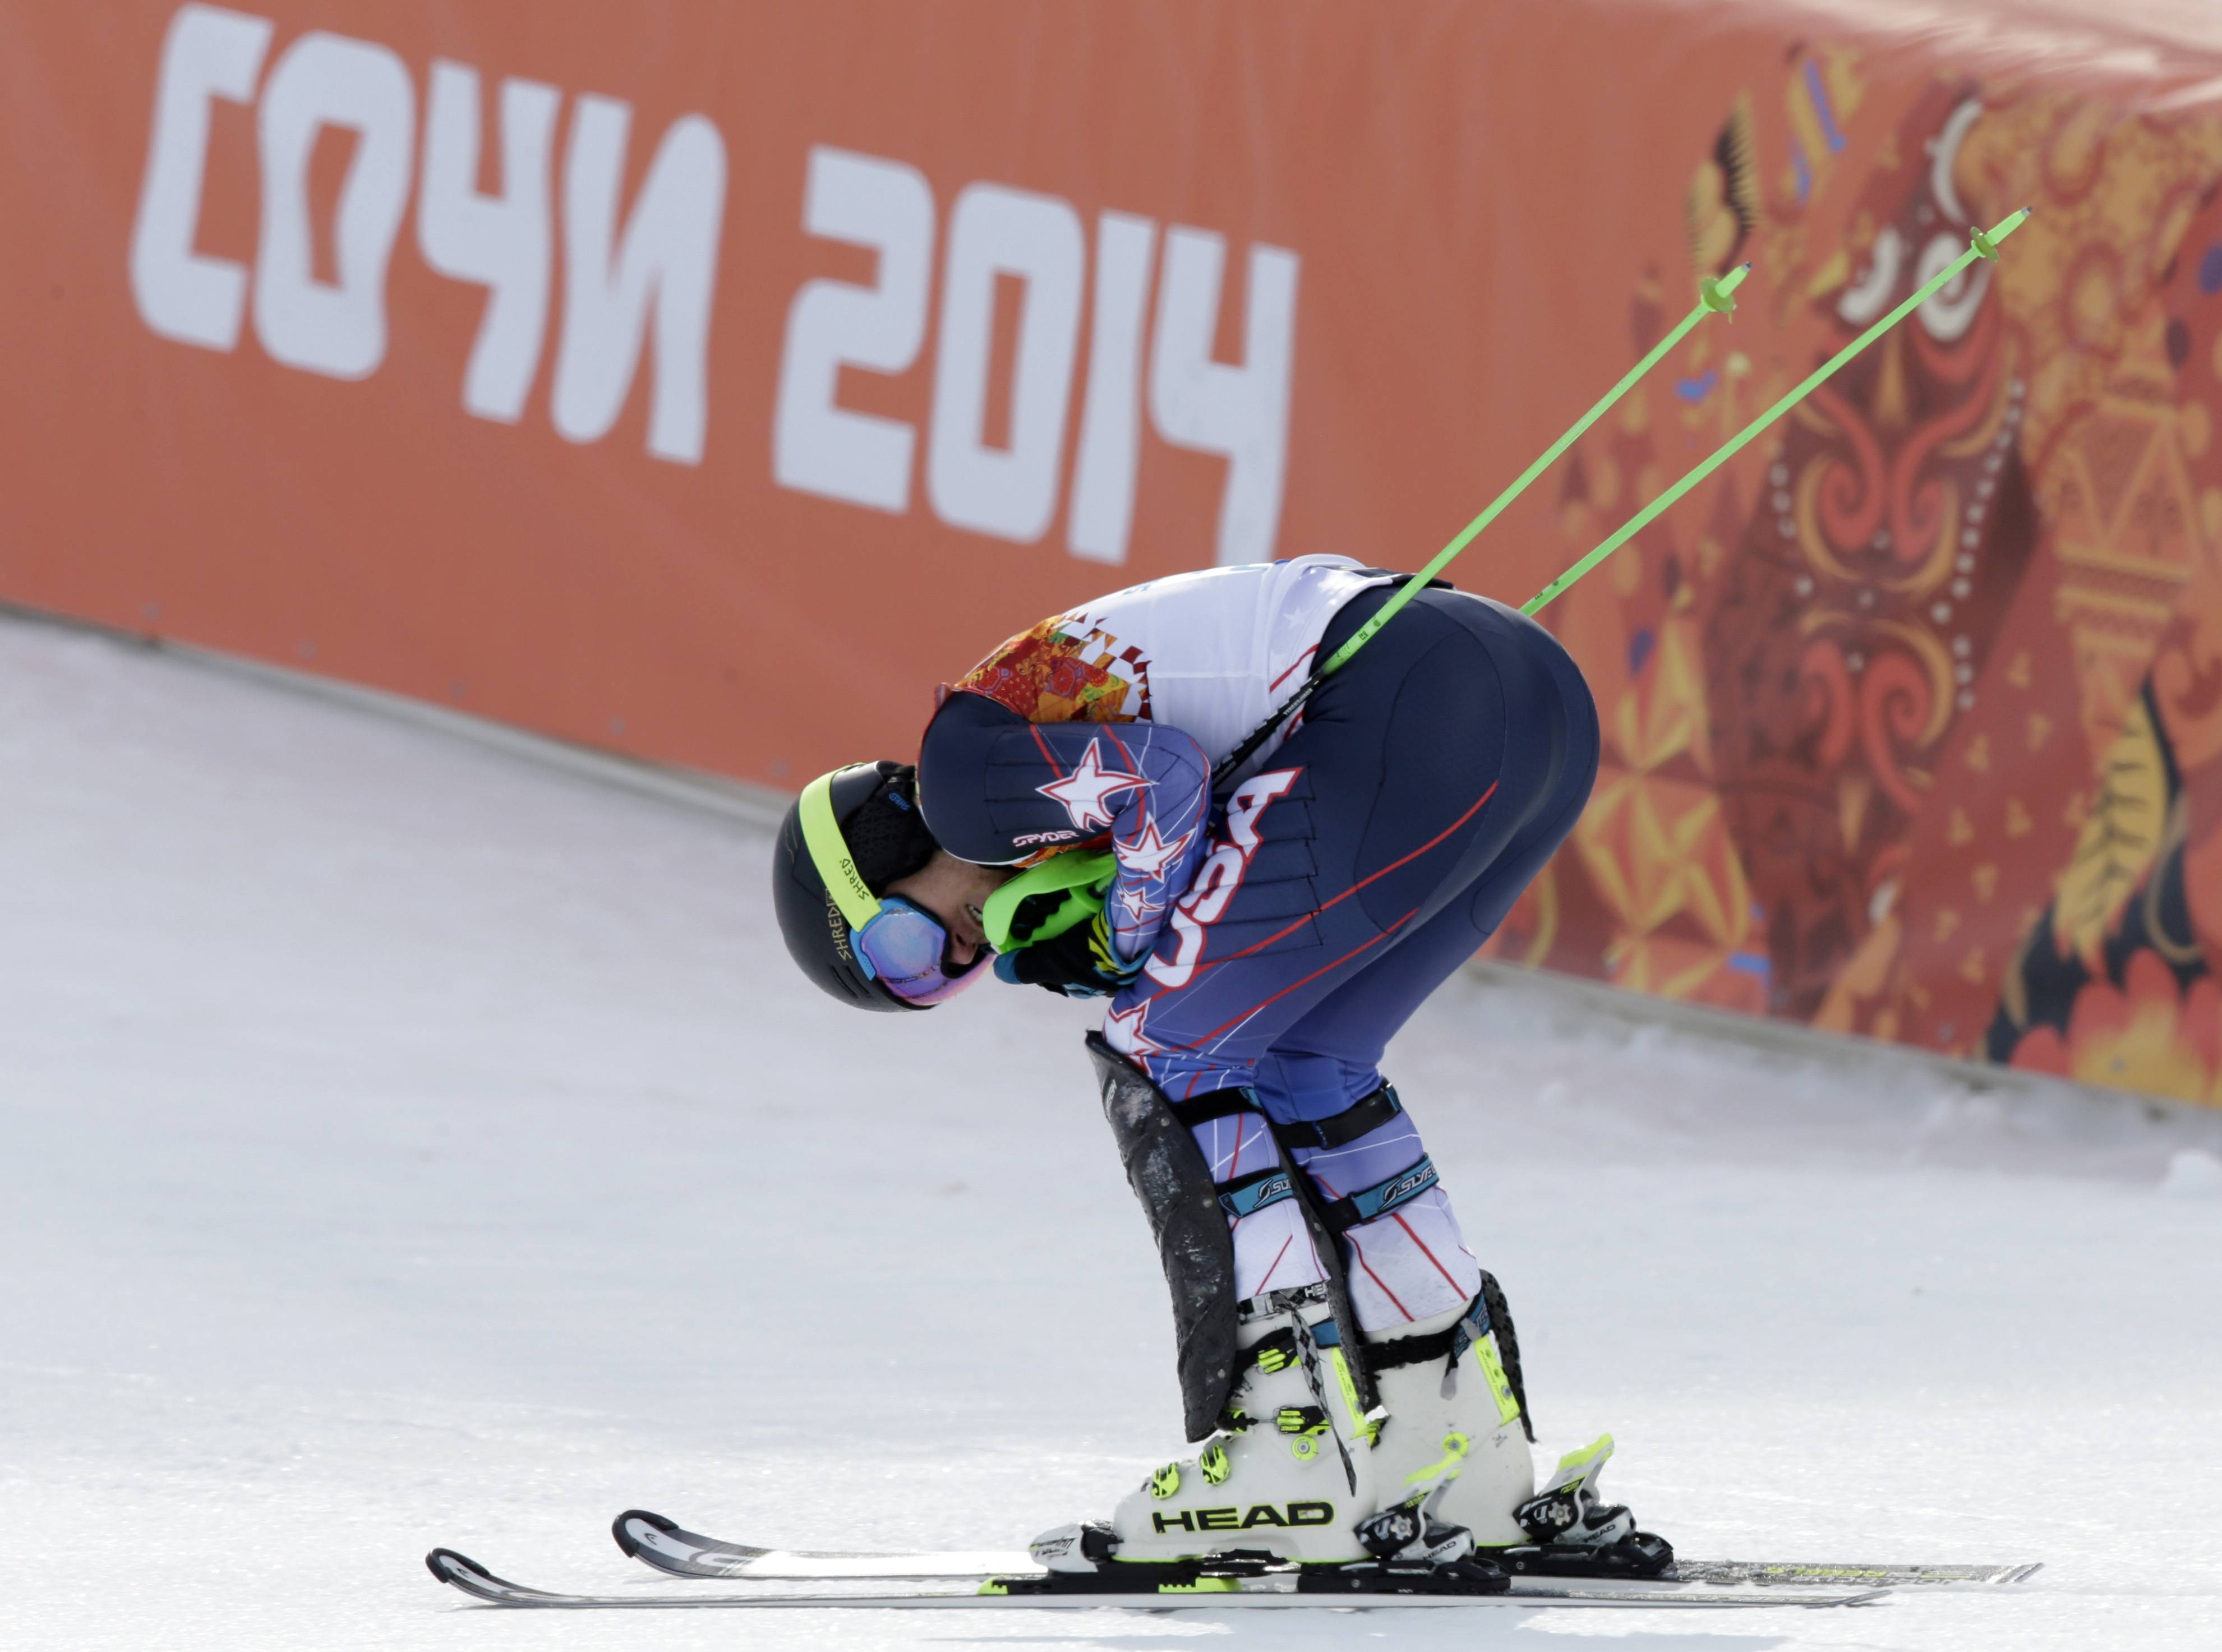 United States' Ted Ligety rests after finishing the slalom portion of the men's supercombined at the Sochi 2014 Winter Olympics, Friday, Feb. 14, 2014, in Krasnaya Polyana, Russia.